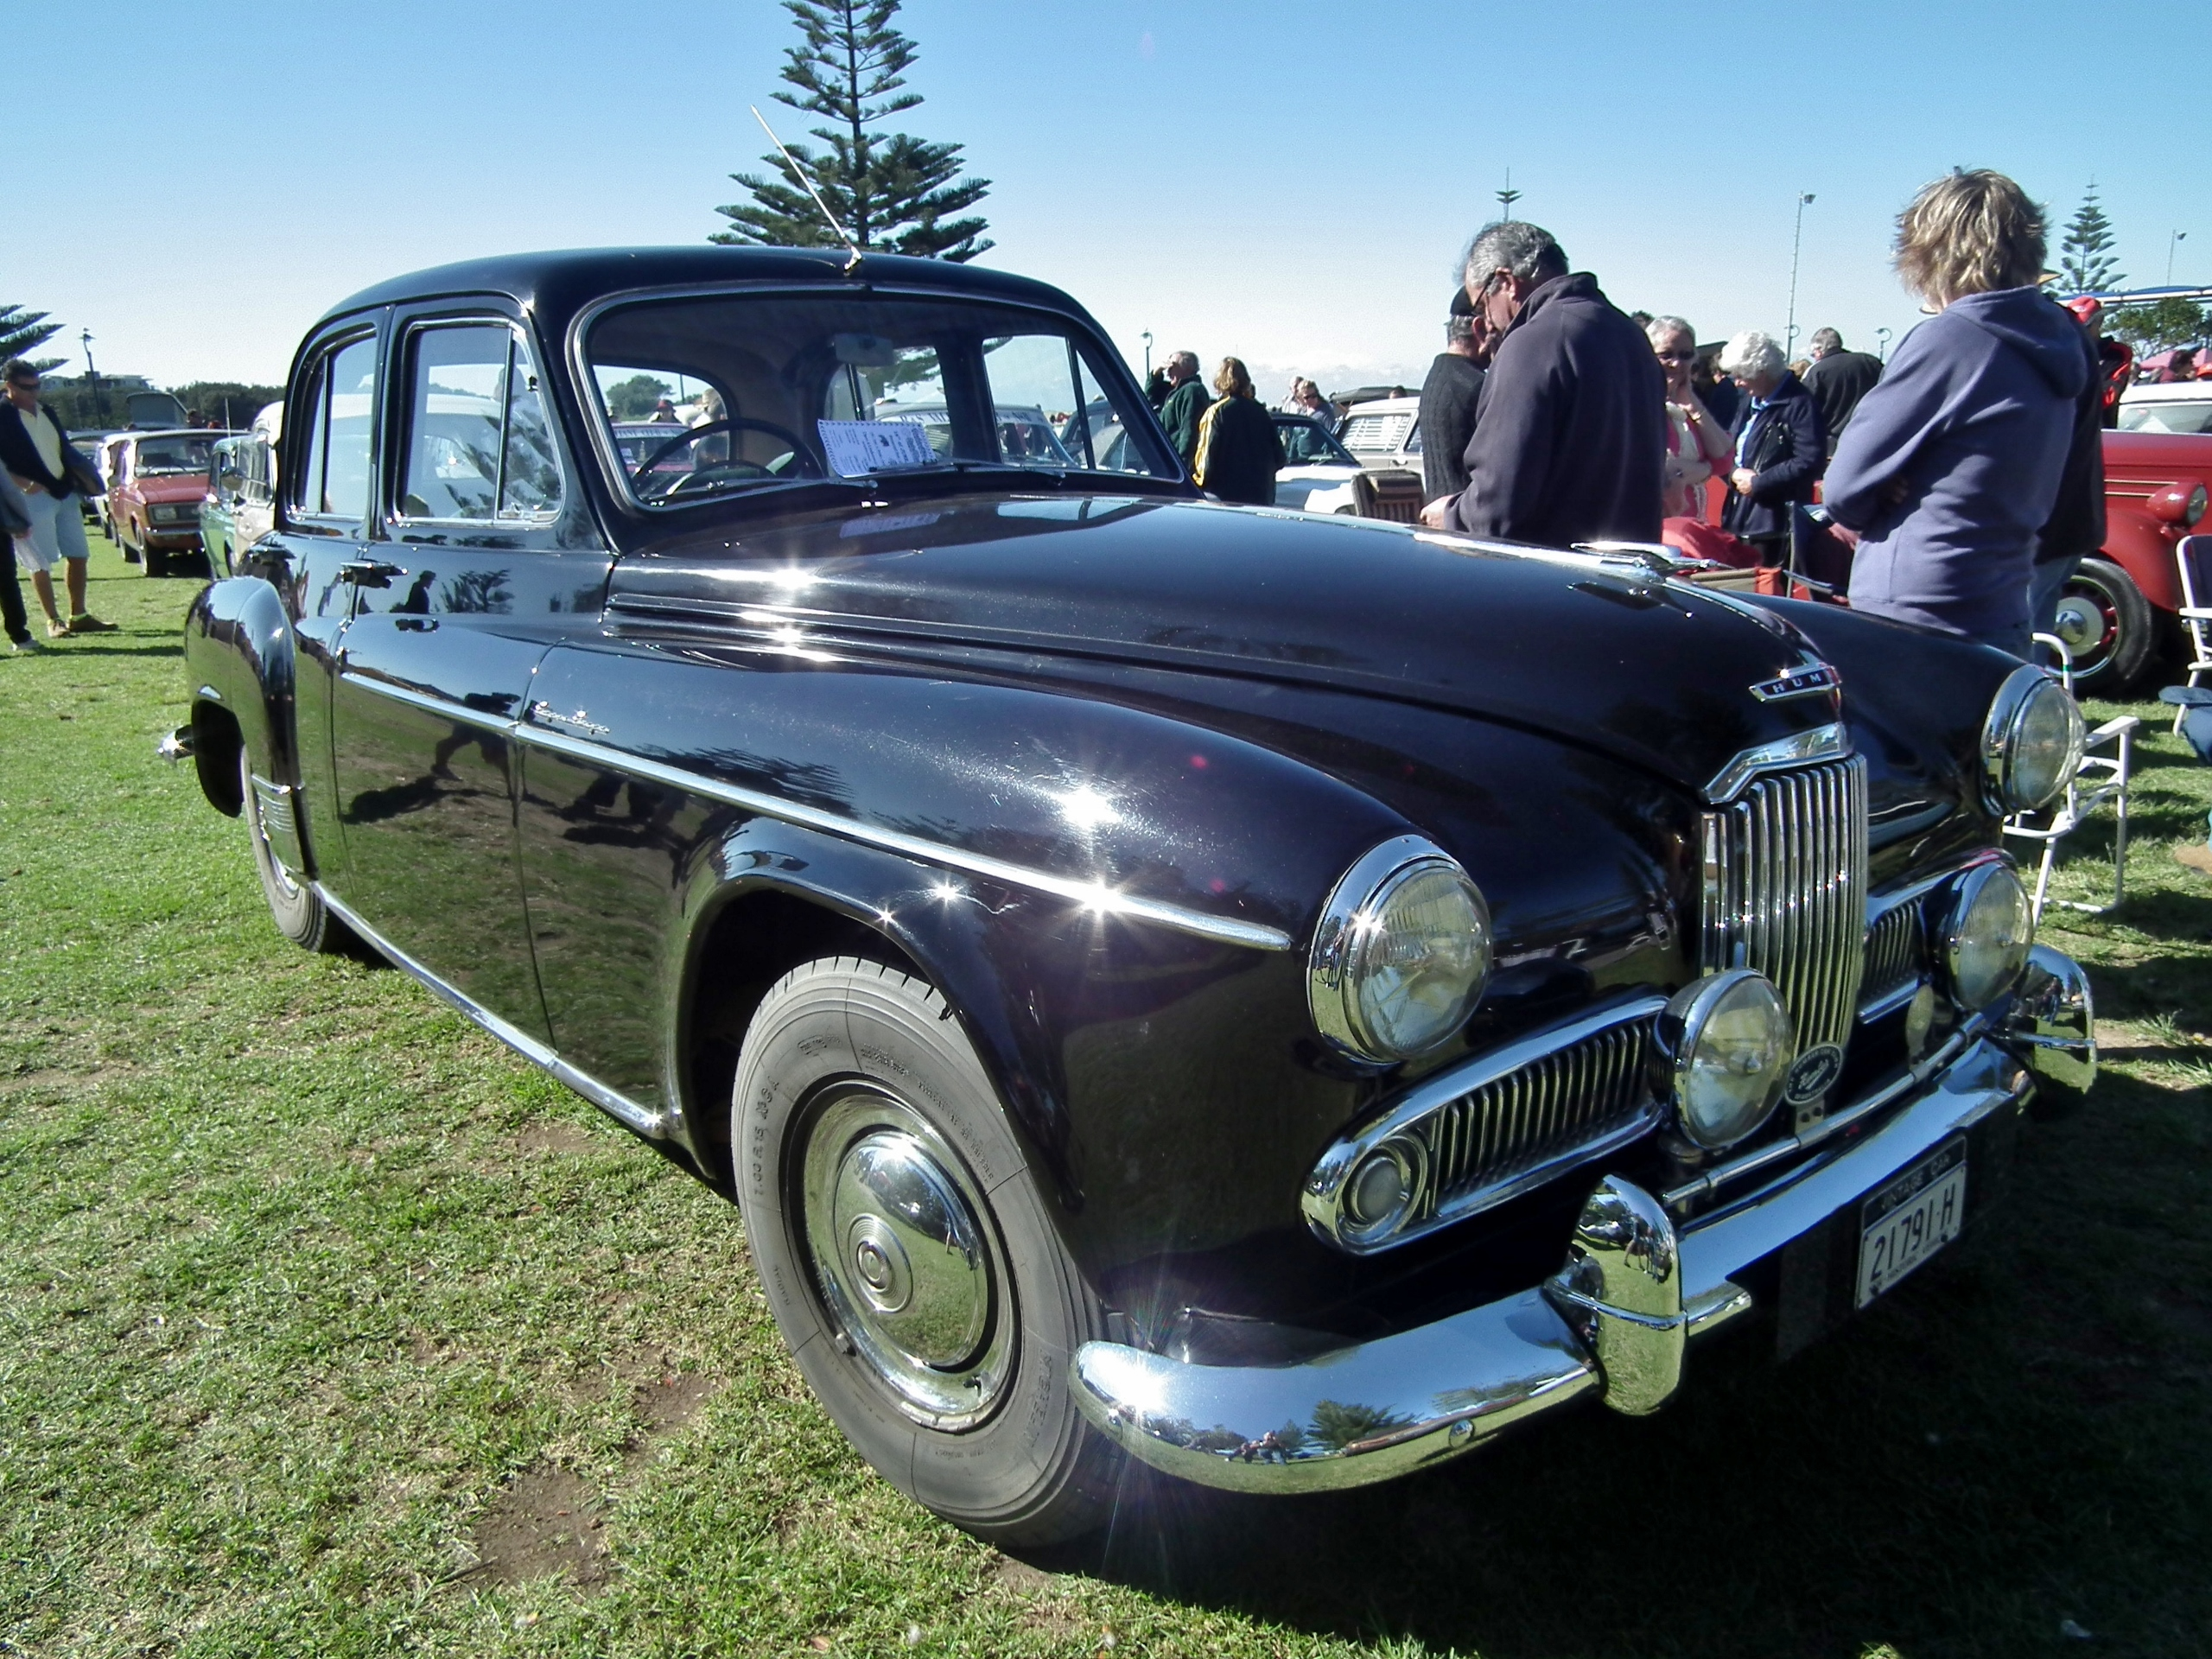 Humber Super Snipe Cars For Sale